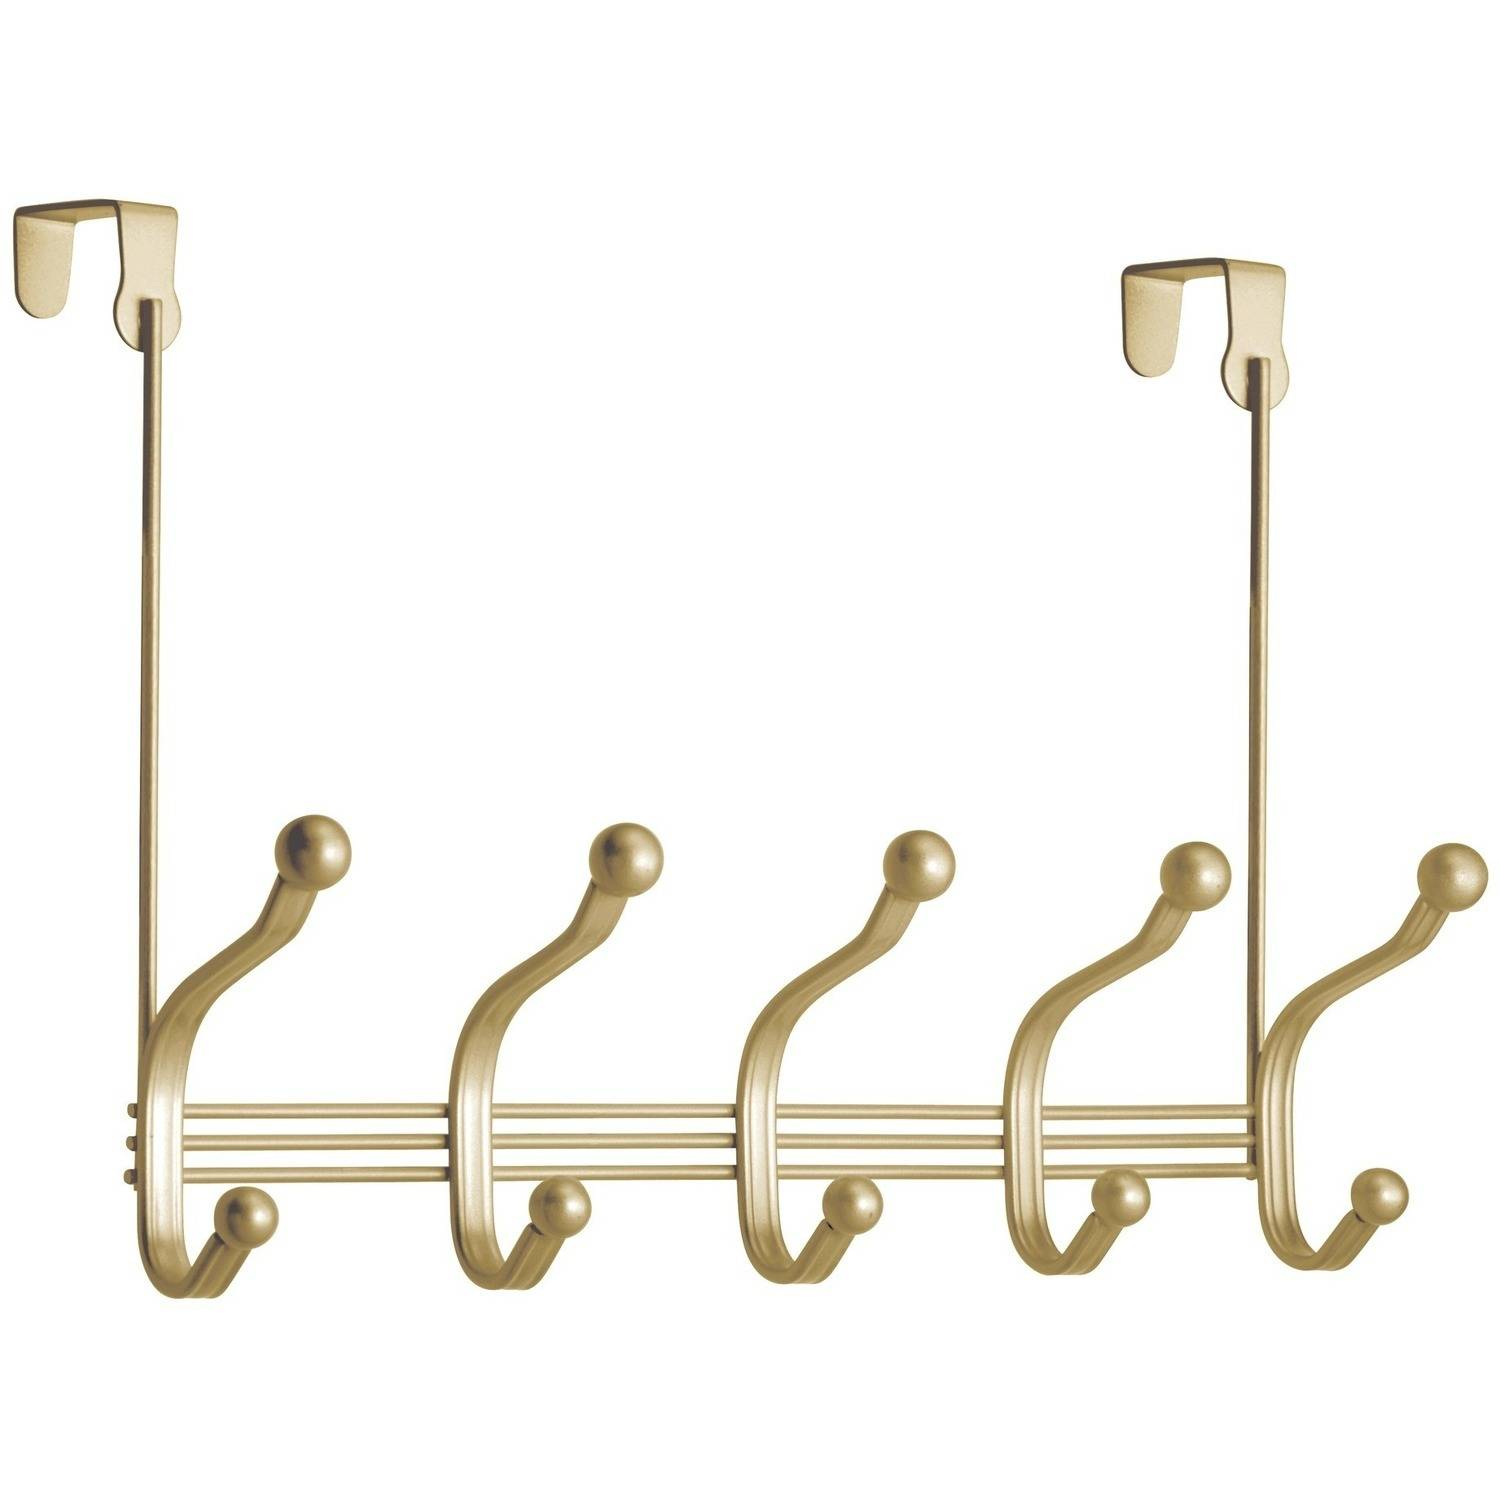 InterDesign York Lyra Over the Door Organizer 10 Hook Rack, Pearl Gold